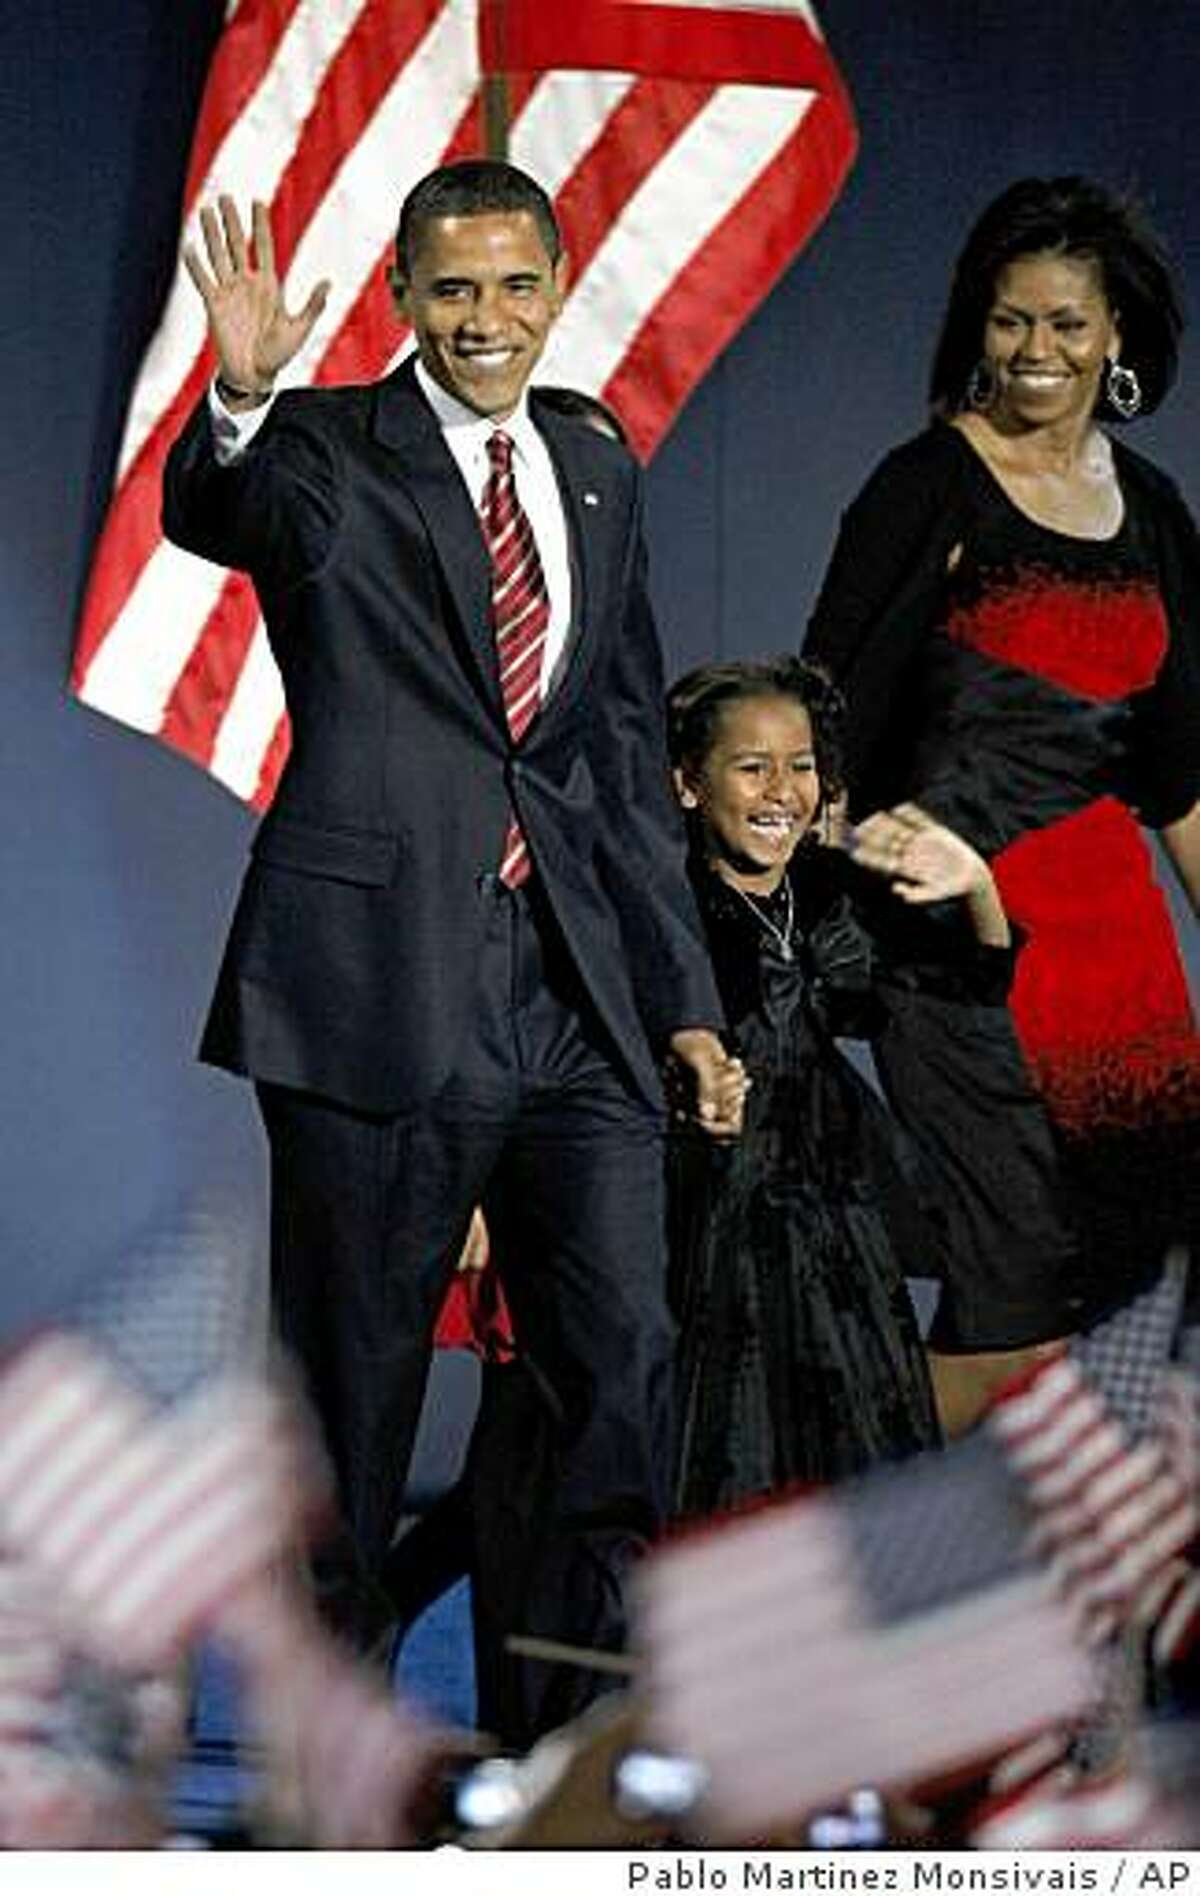 President-elect Barack Obama, his wife Michelle and daughter Sasha, 7, wave as they take the stage at his election night party at Grant Park in Chicago, Tuesday night, Nov. 4, 2008. (AP Photo/Pablo Martinez Monsivais)